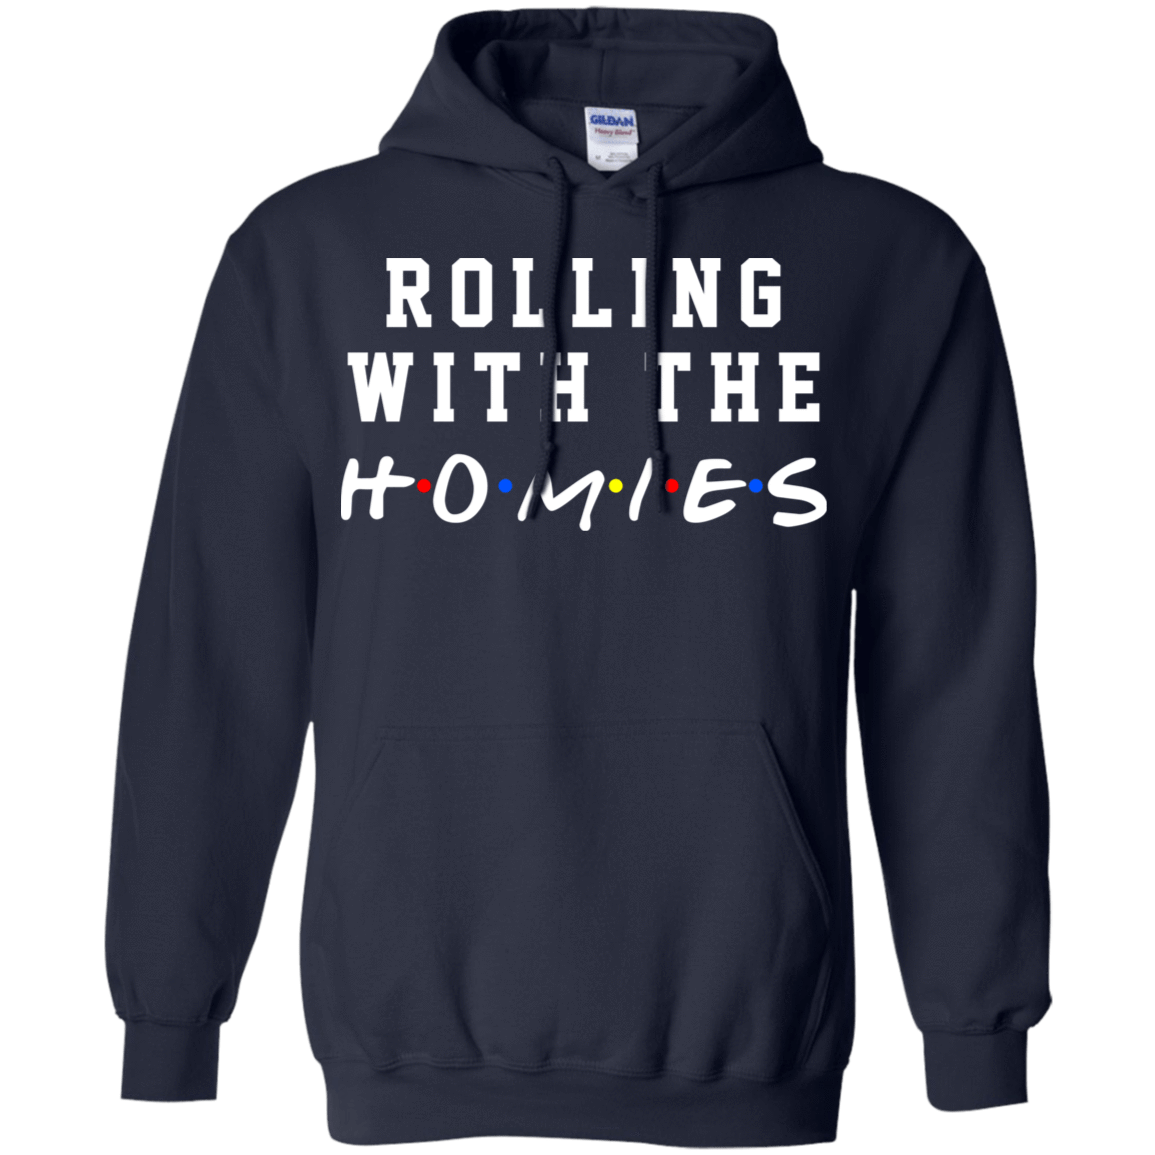 Rolling With The Homies T-Shirts, Hoodie, Tank 541-4742-77675123-23135 - Tee Ript